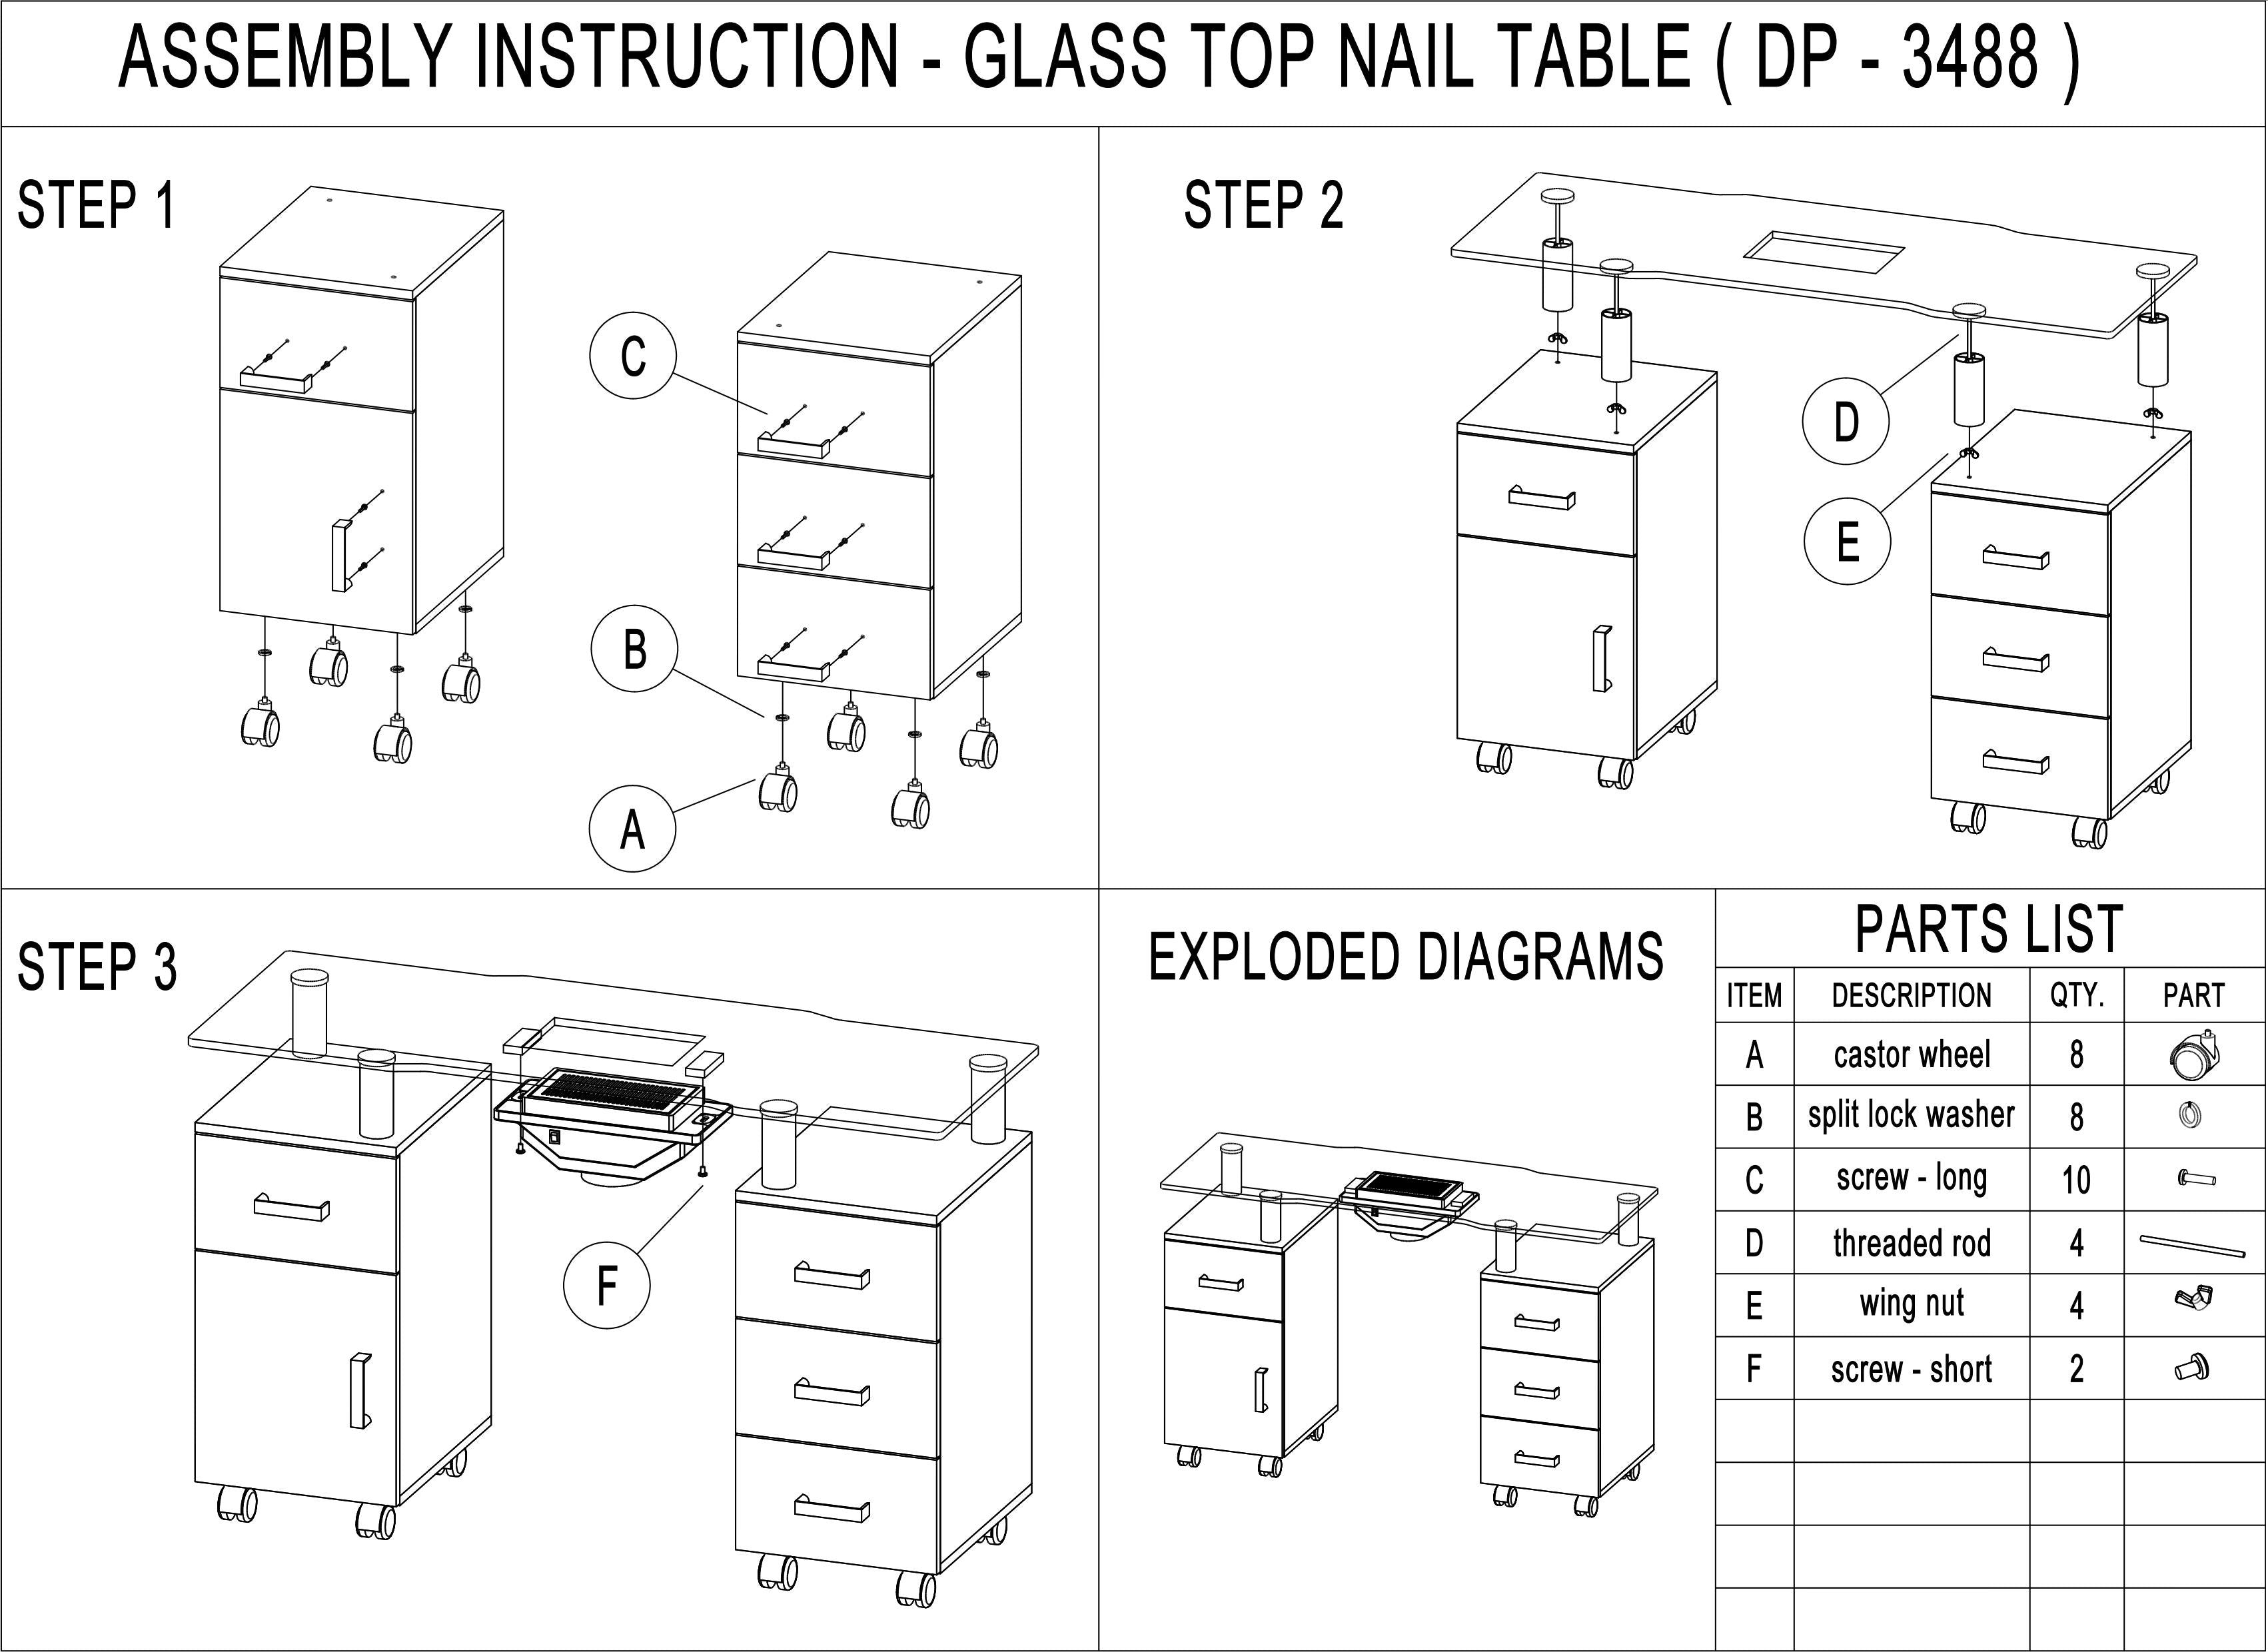 https://cdn.shopify.com/s/files/1/0529/0246/1630/files/glasglow_manicure_table_manual_and_assembly